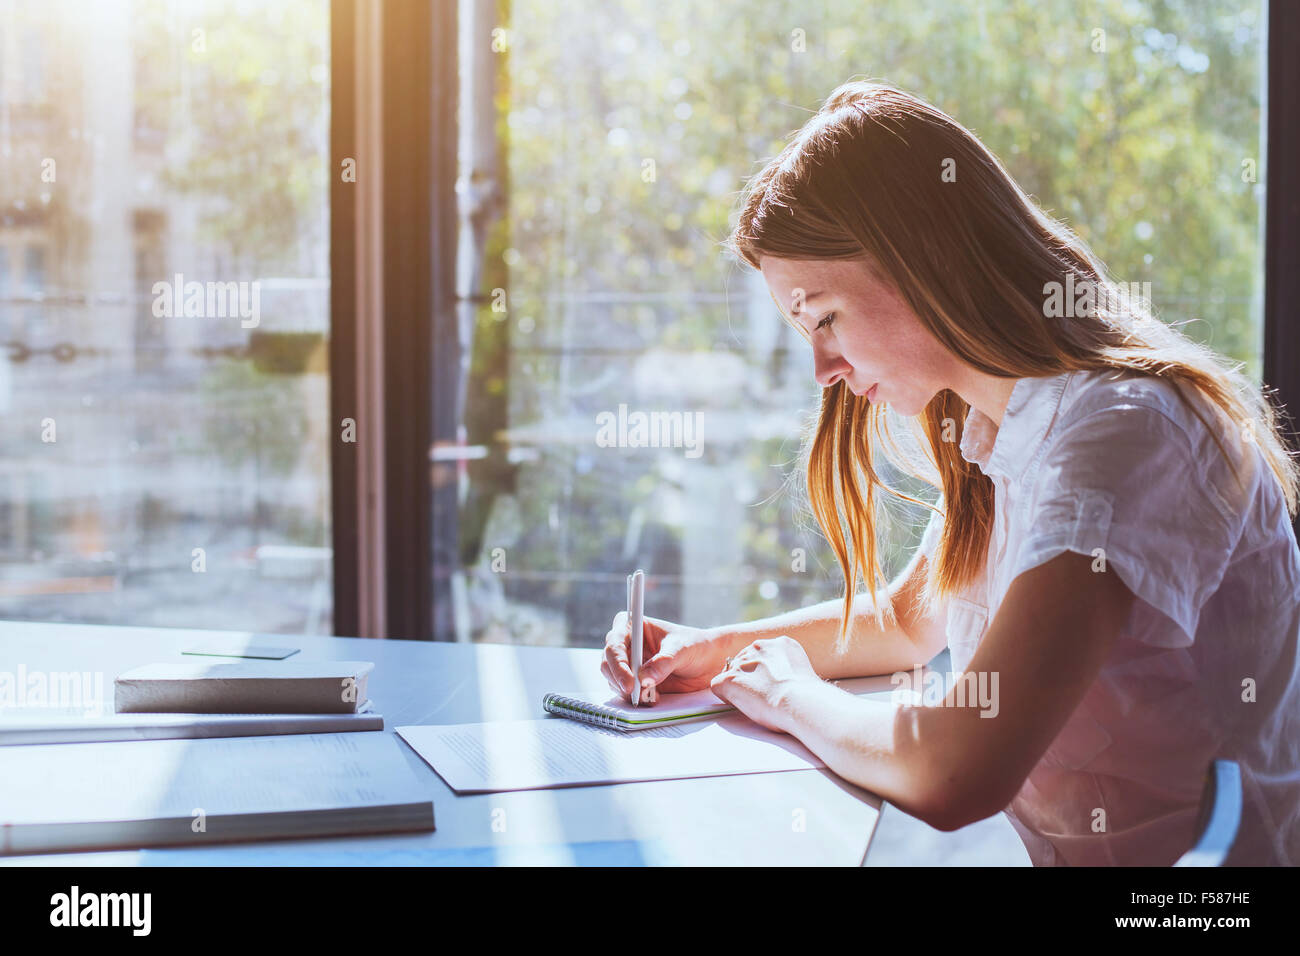 student in classroom during exam - Stock Image